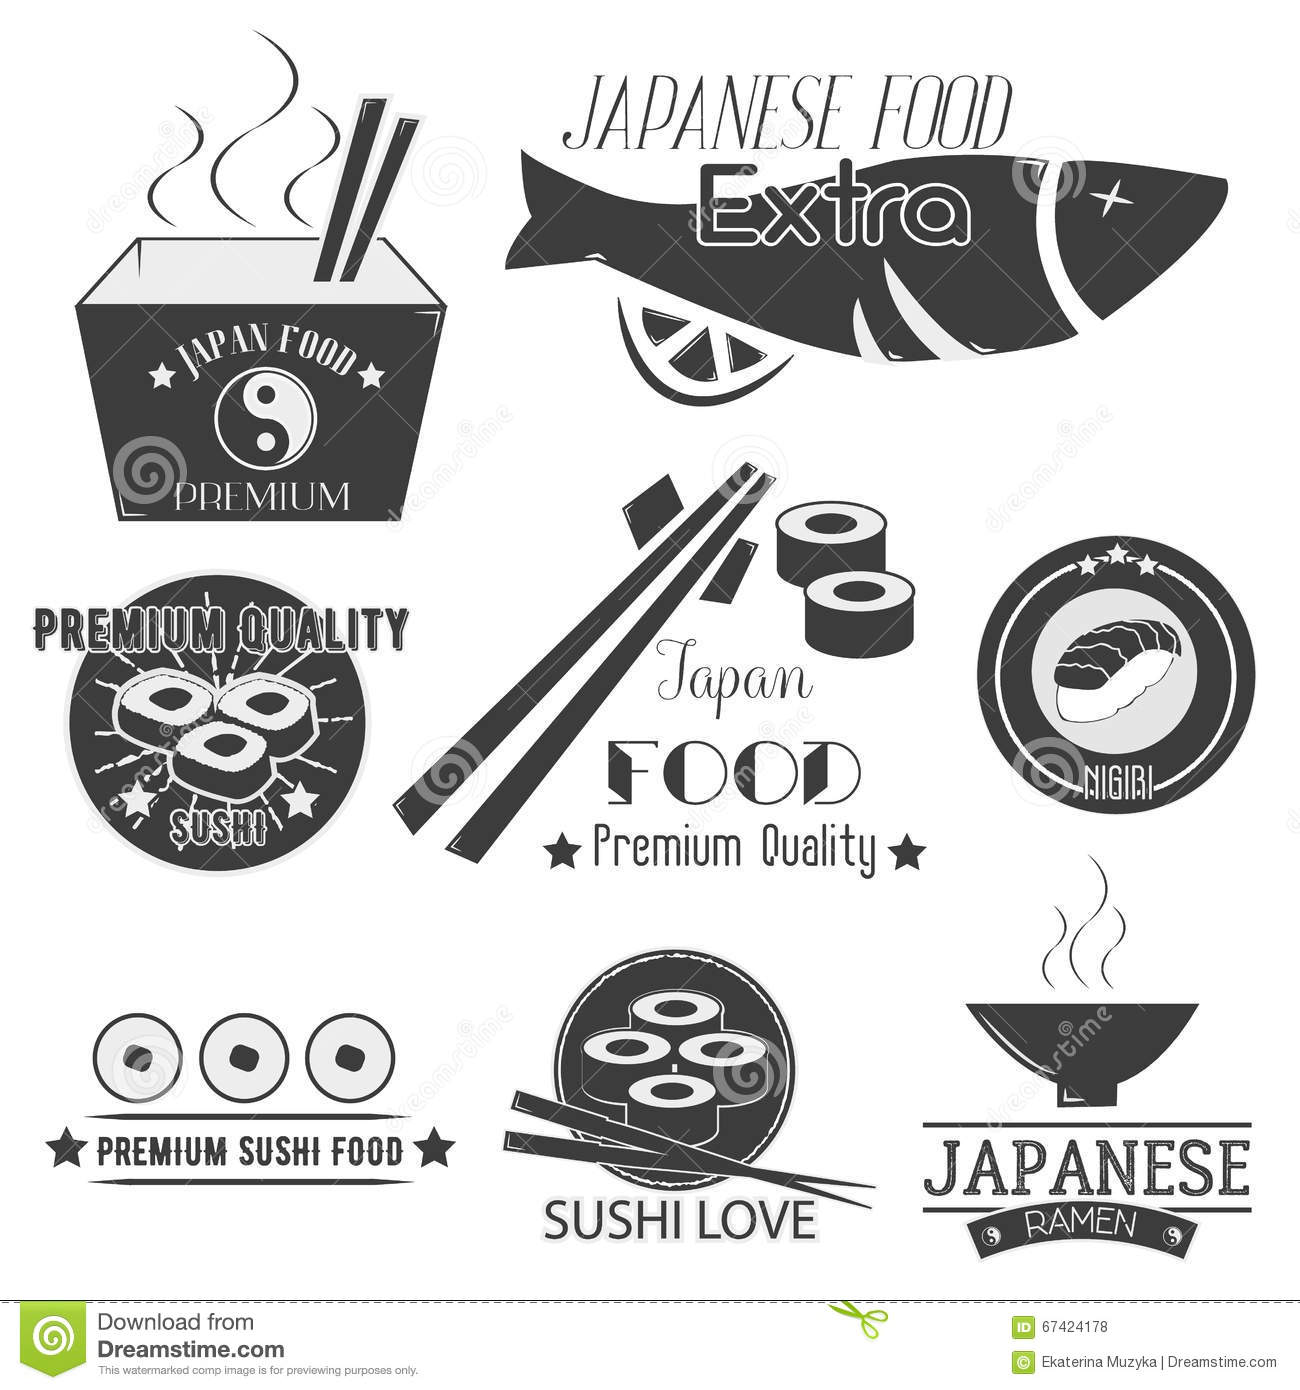 Cuisine stock illustrations 98472 cuisine stock illustrations japanese food restaurant logo icons asian cuisine illustration buycottarizona Image collections